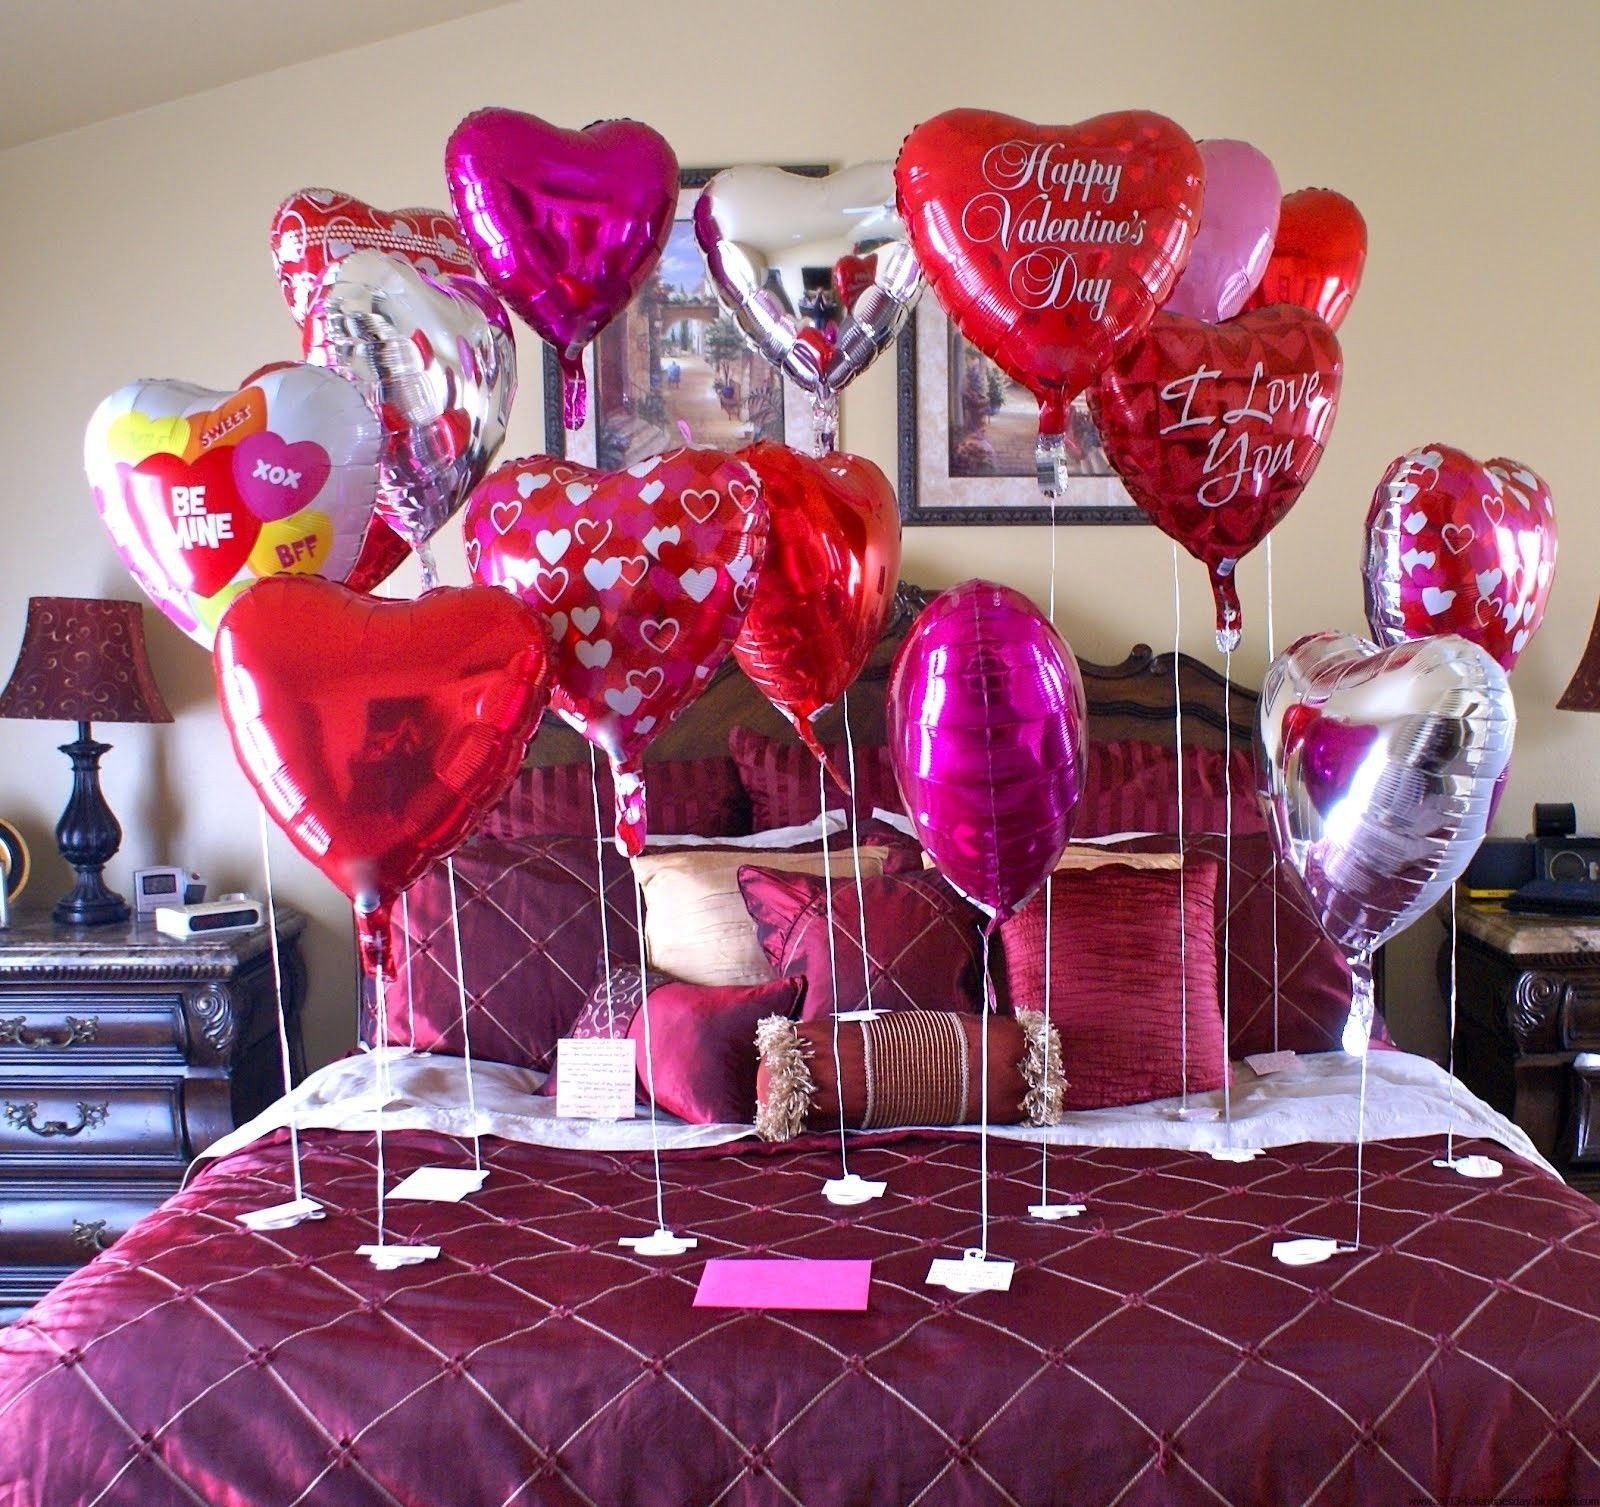 10 Ideal Valentines Day Ideas For Her valentine decoration ideas valentines day bed decoration ideas 2020